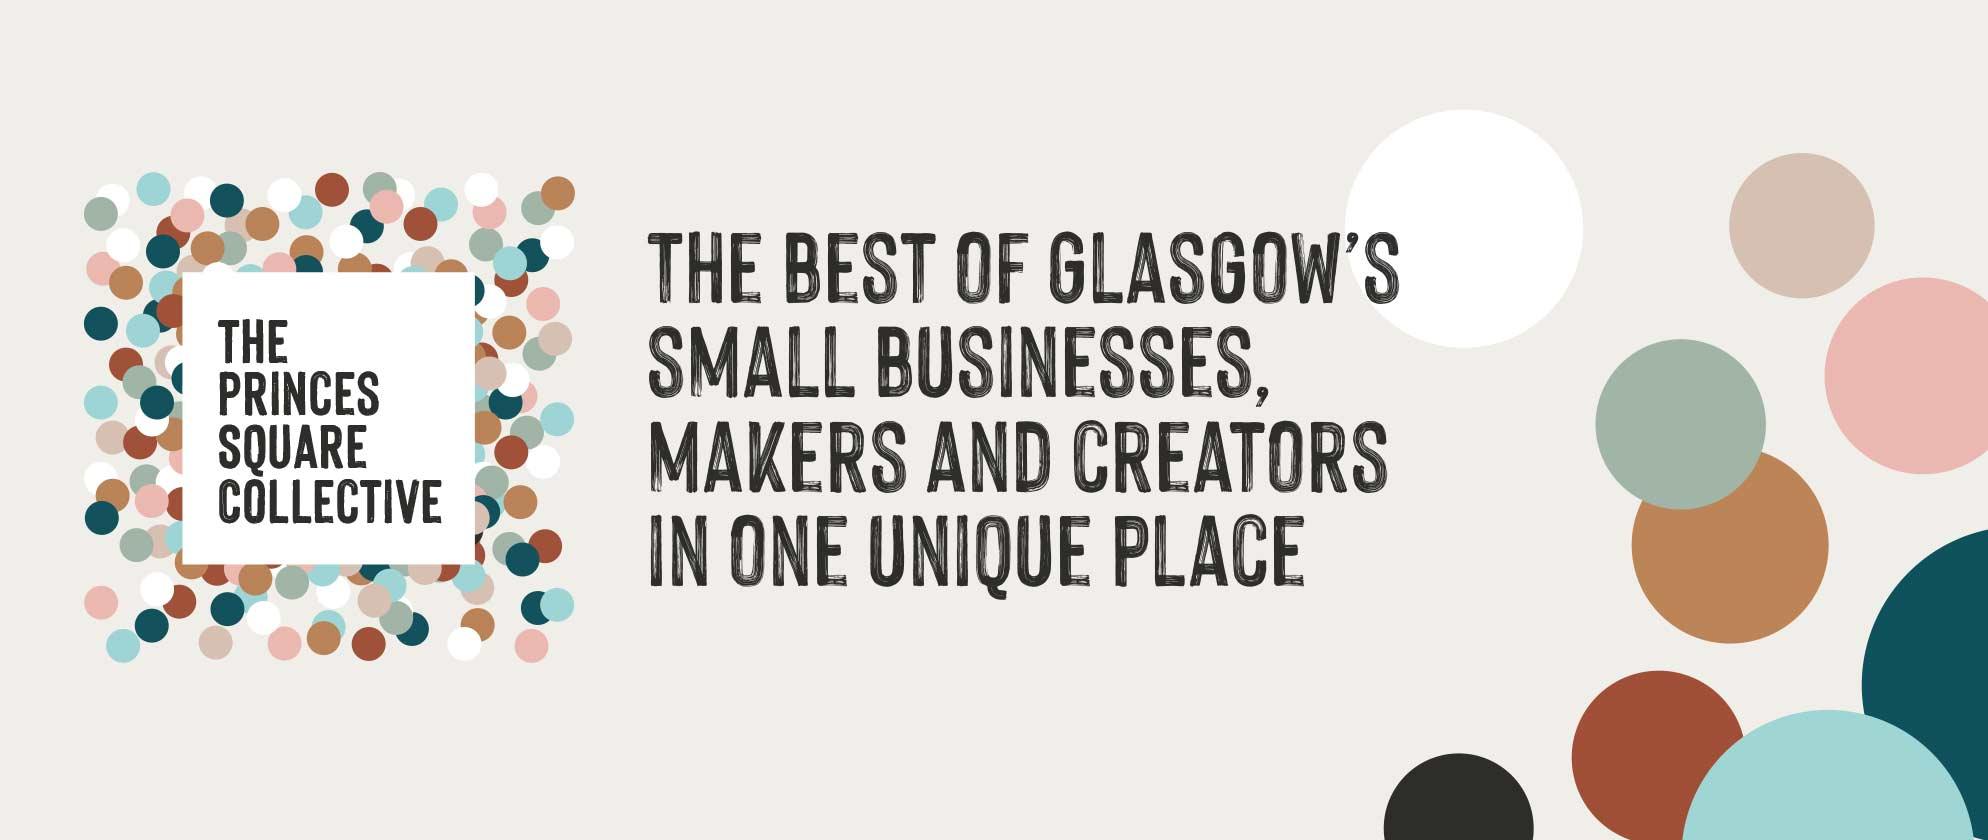 Glasgow's Small Businesses